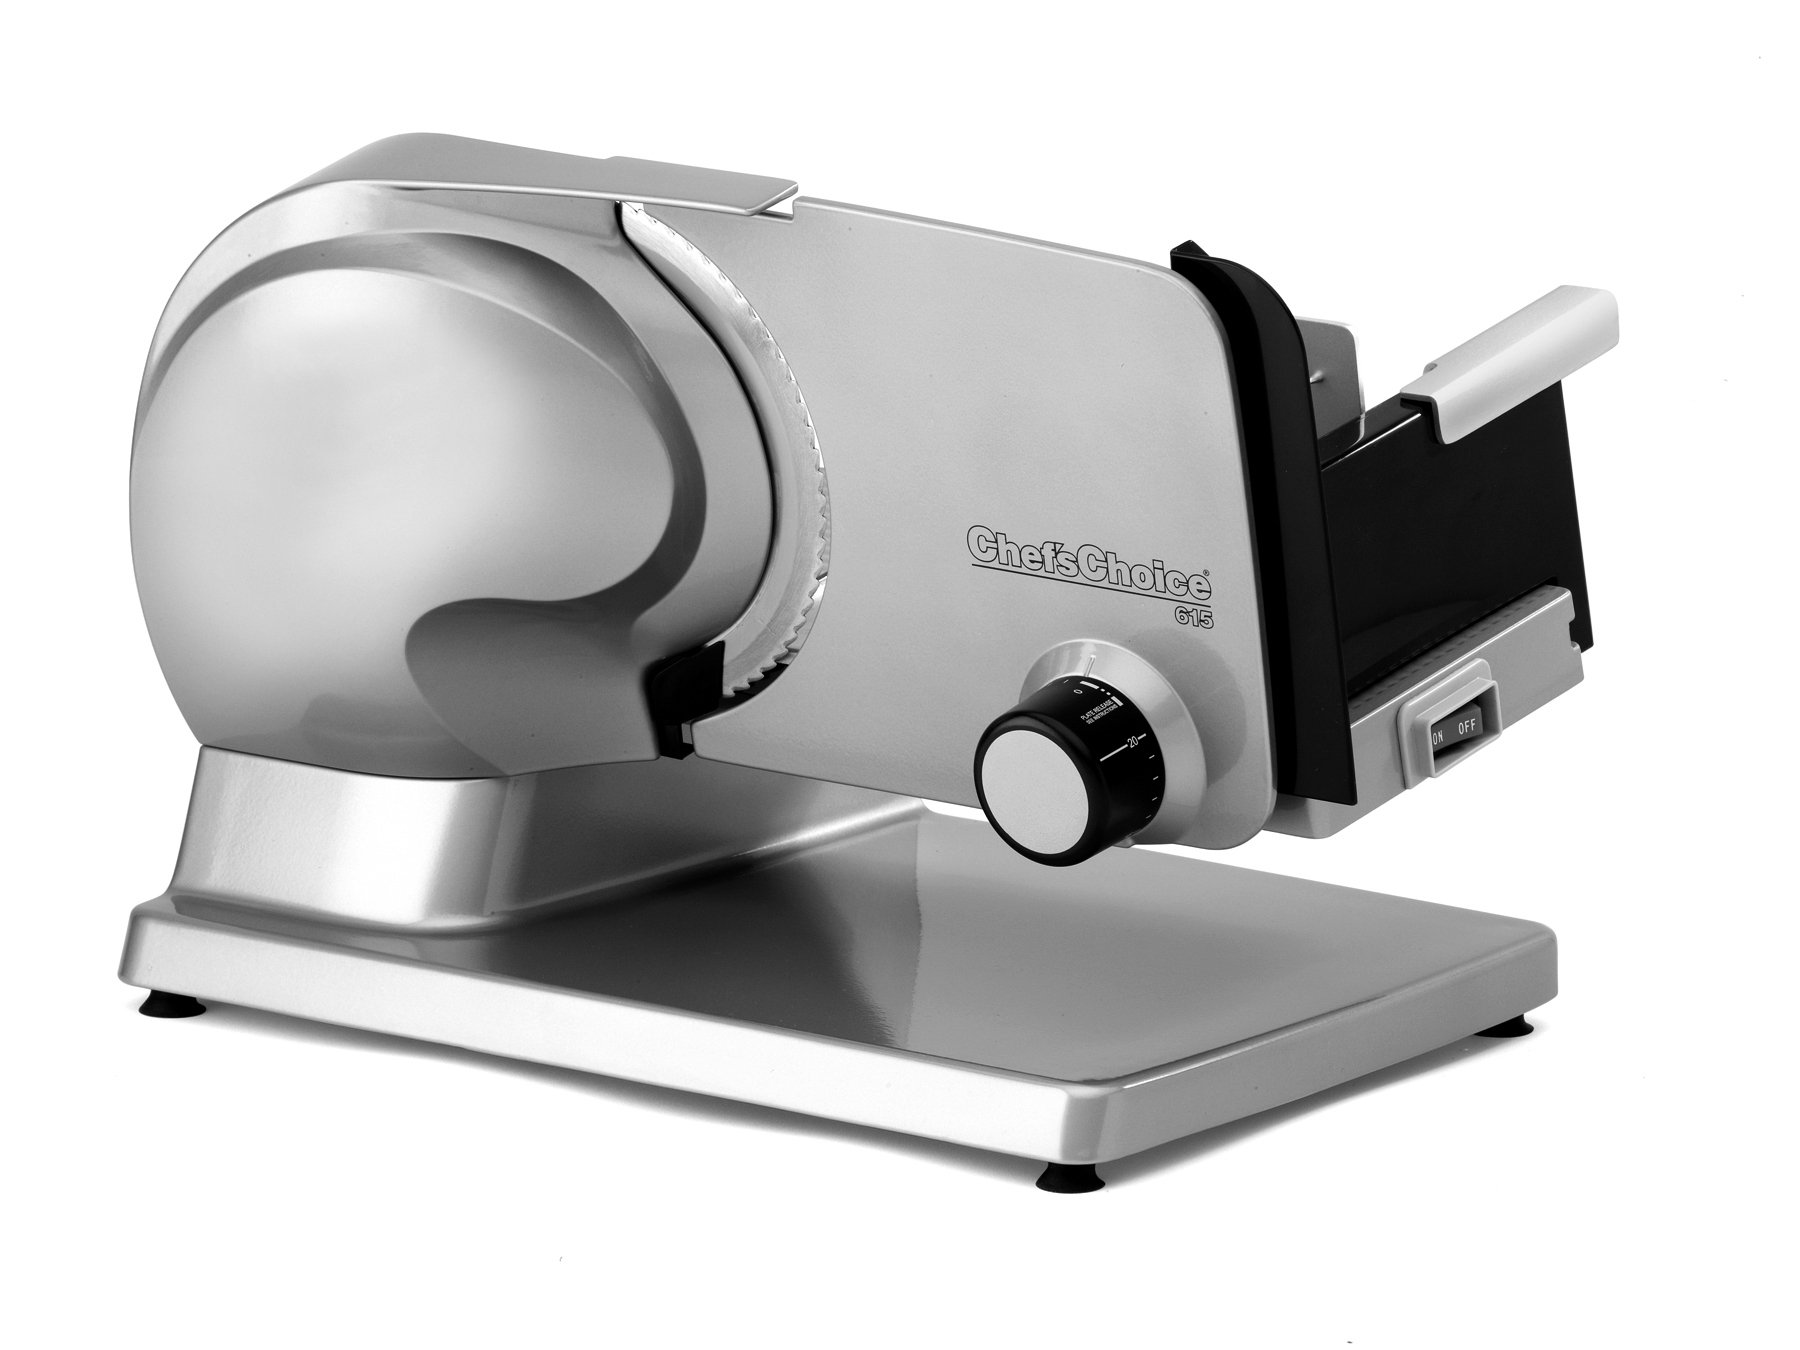 A Home Meat Slicer